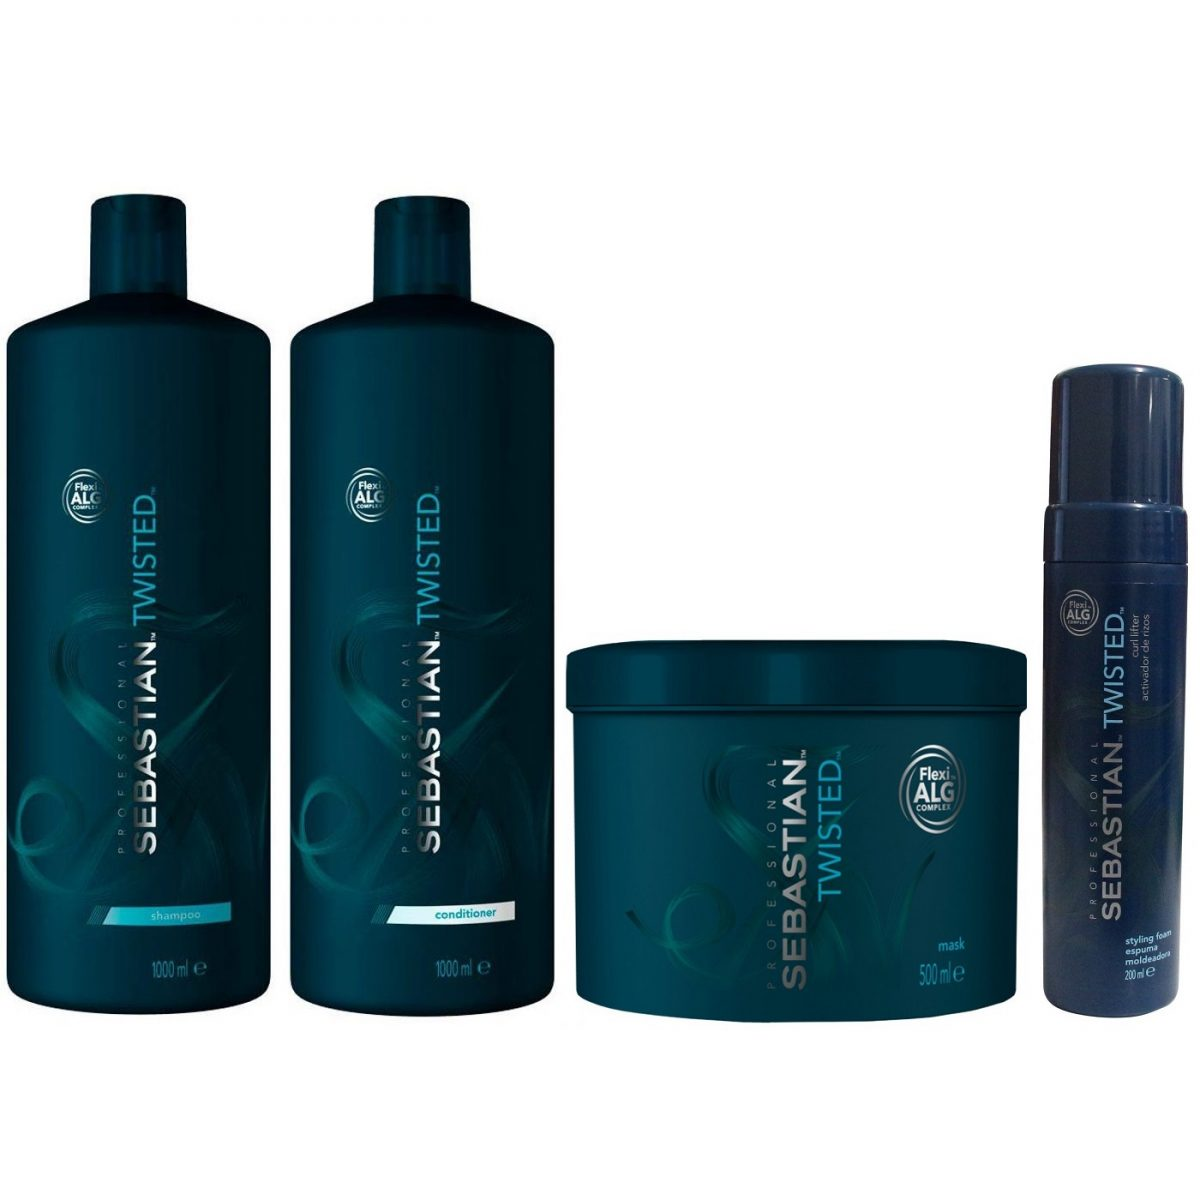 20_Emphase_Sebastian_Twisted_Shampoo_1000ml_Acondicionador_1000ml_Mascarilla_500ml_Curl_Lifter_Foam_200ml